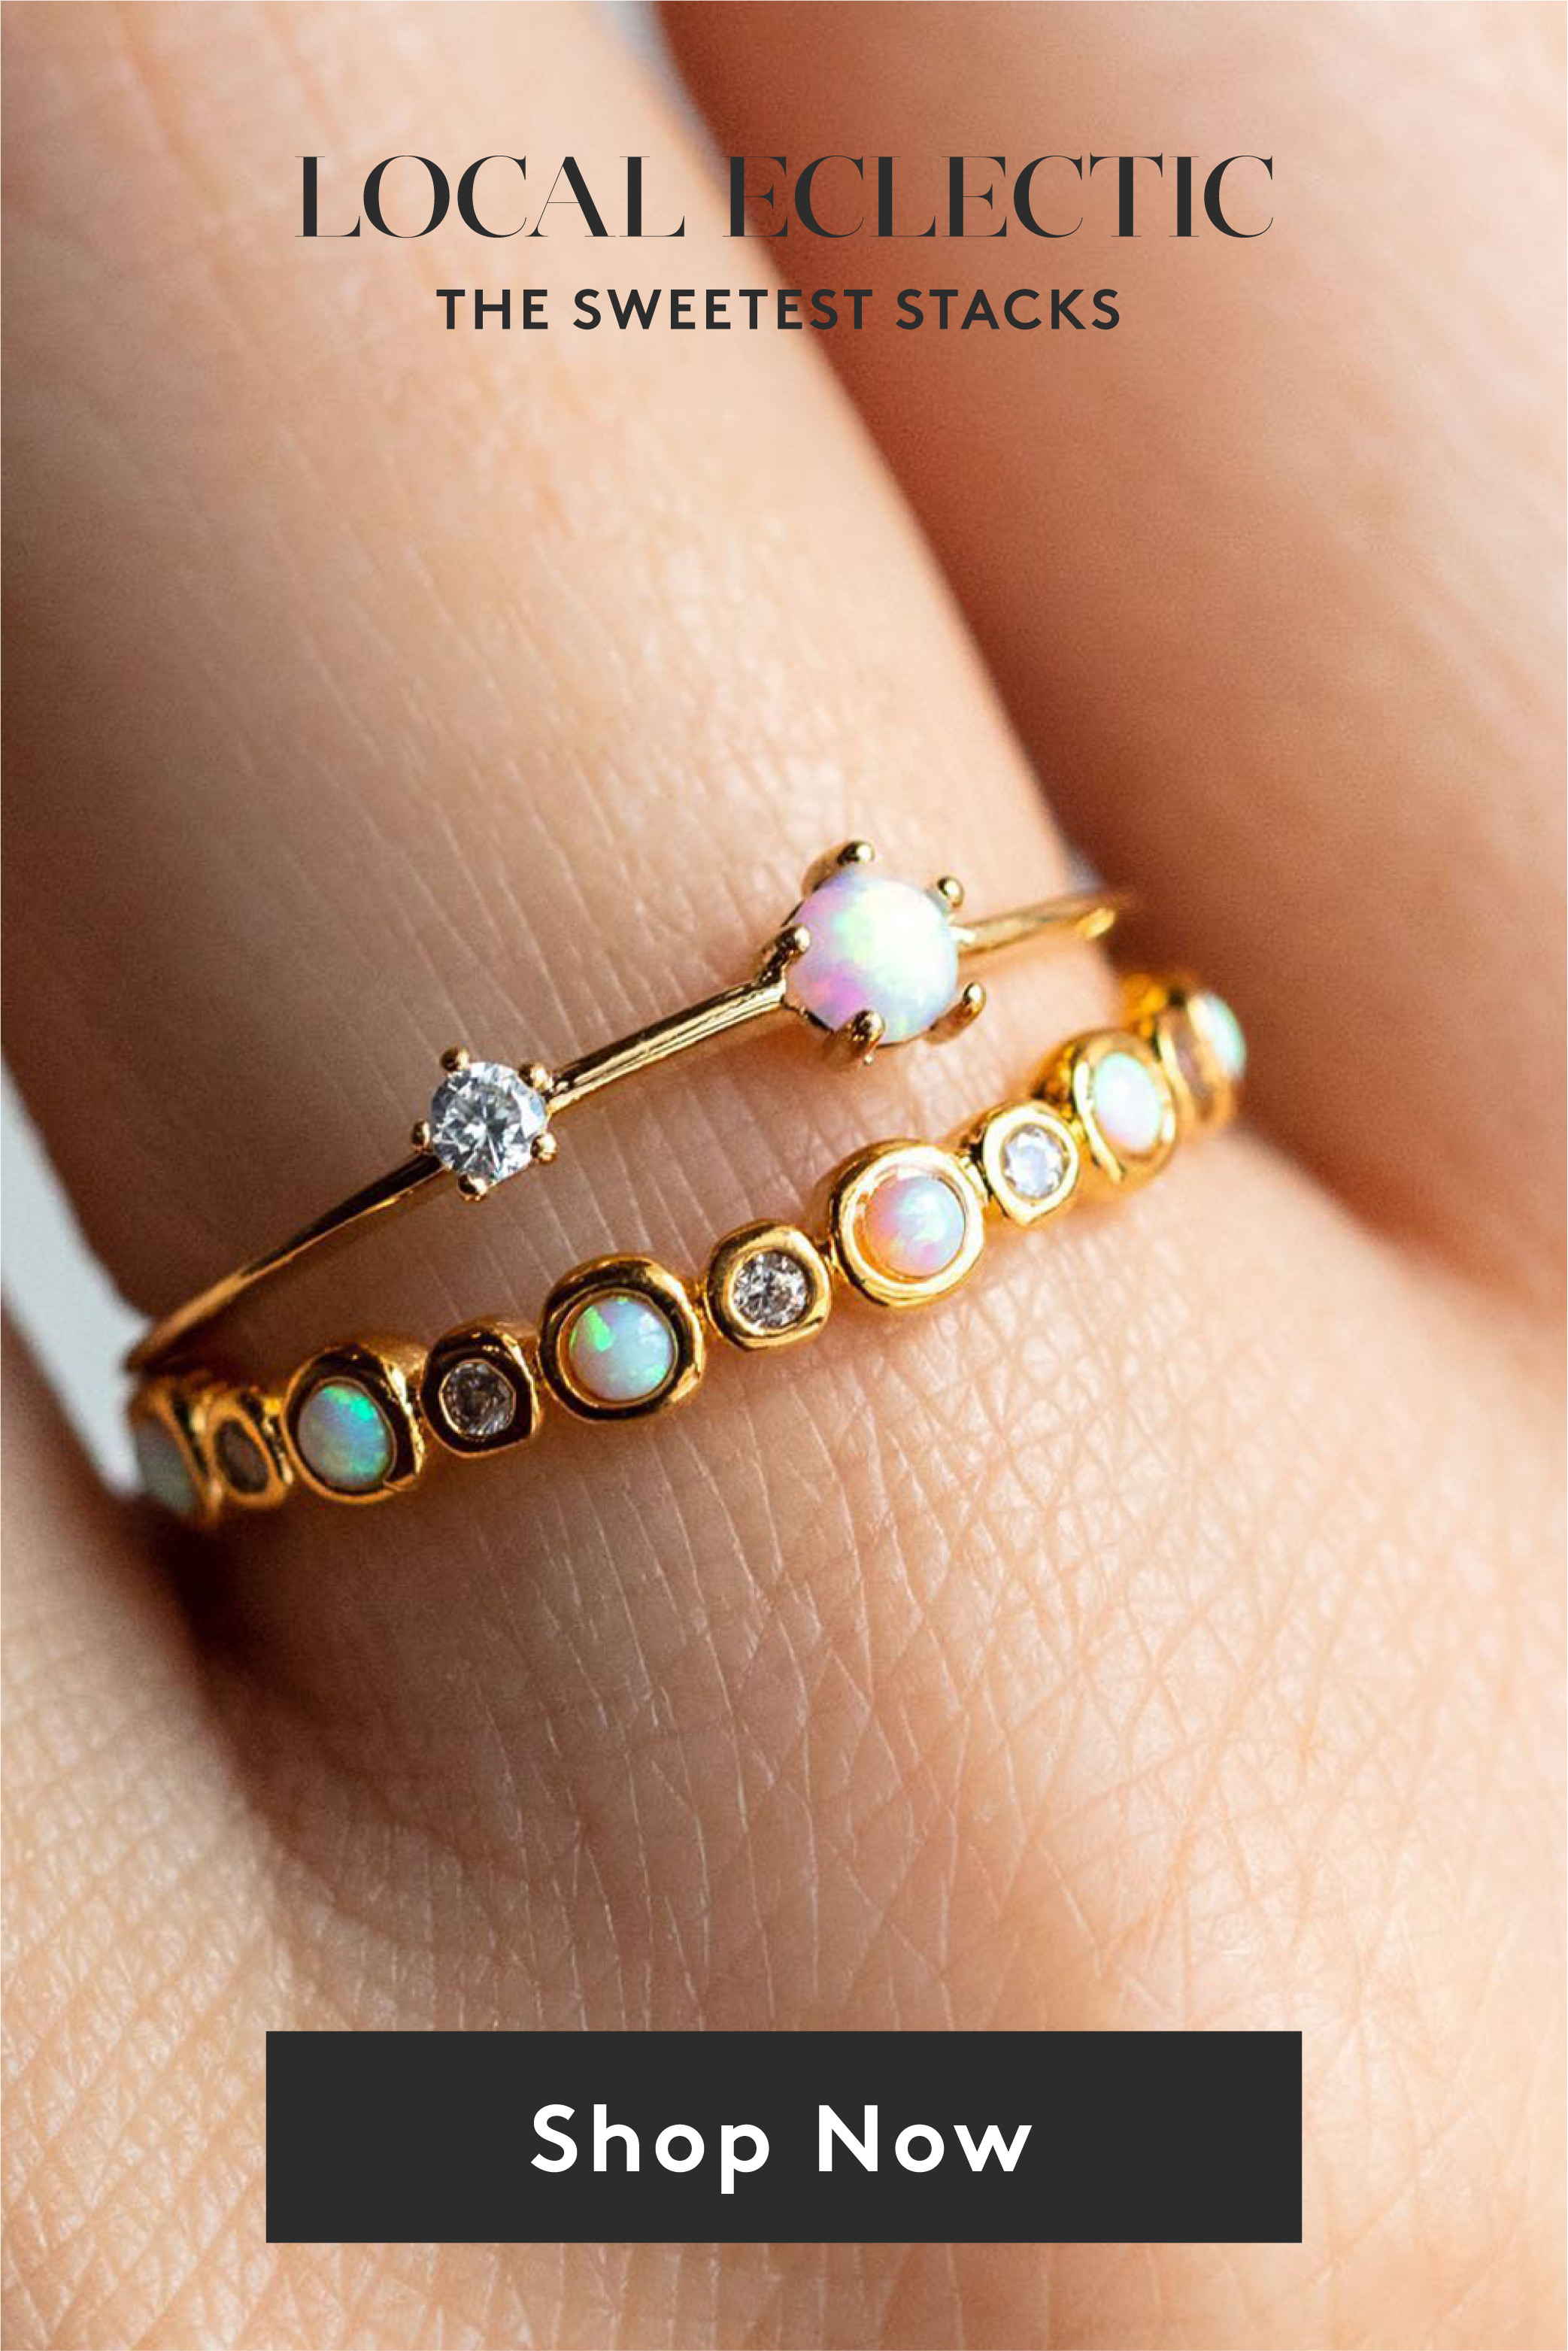 17++ Jewelry stores like local eclectic info